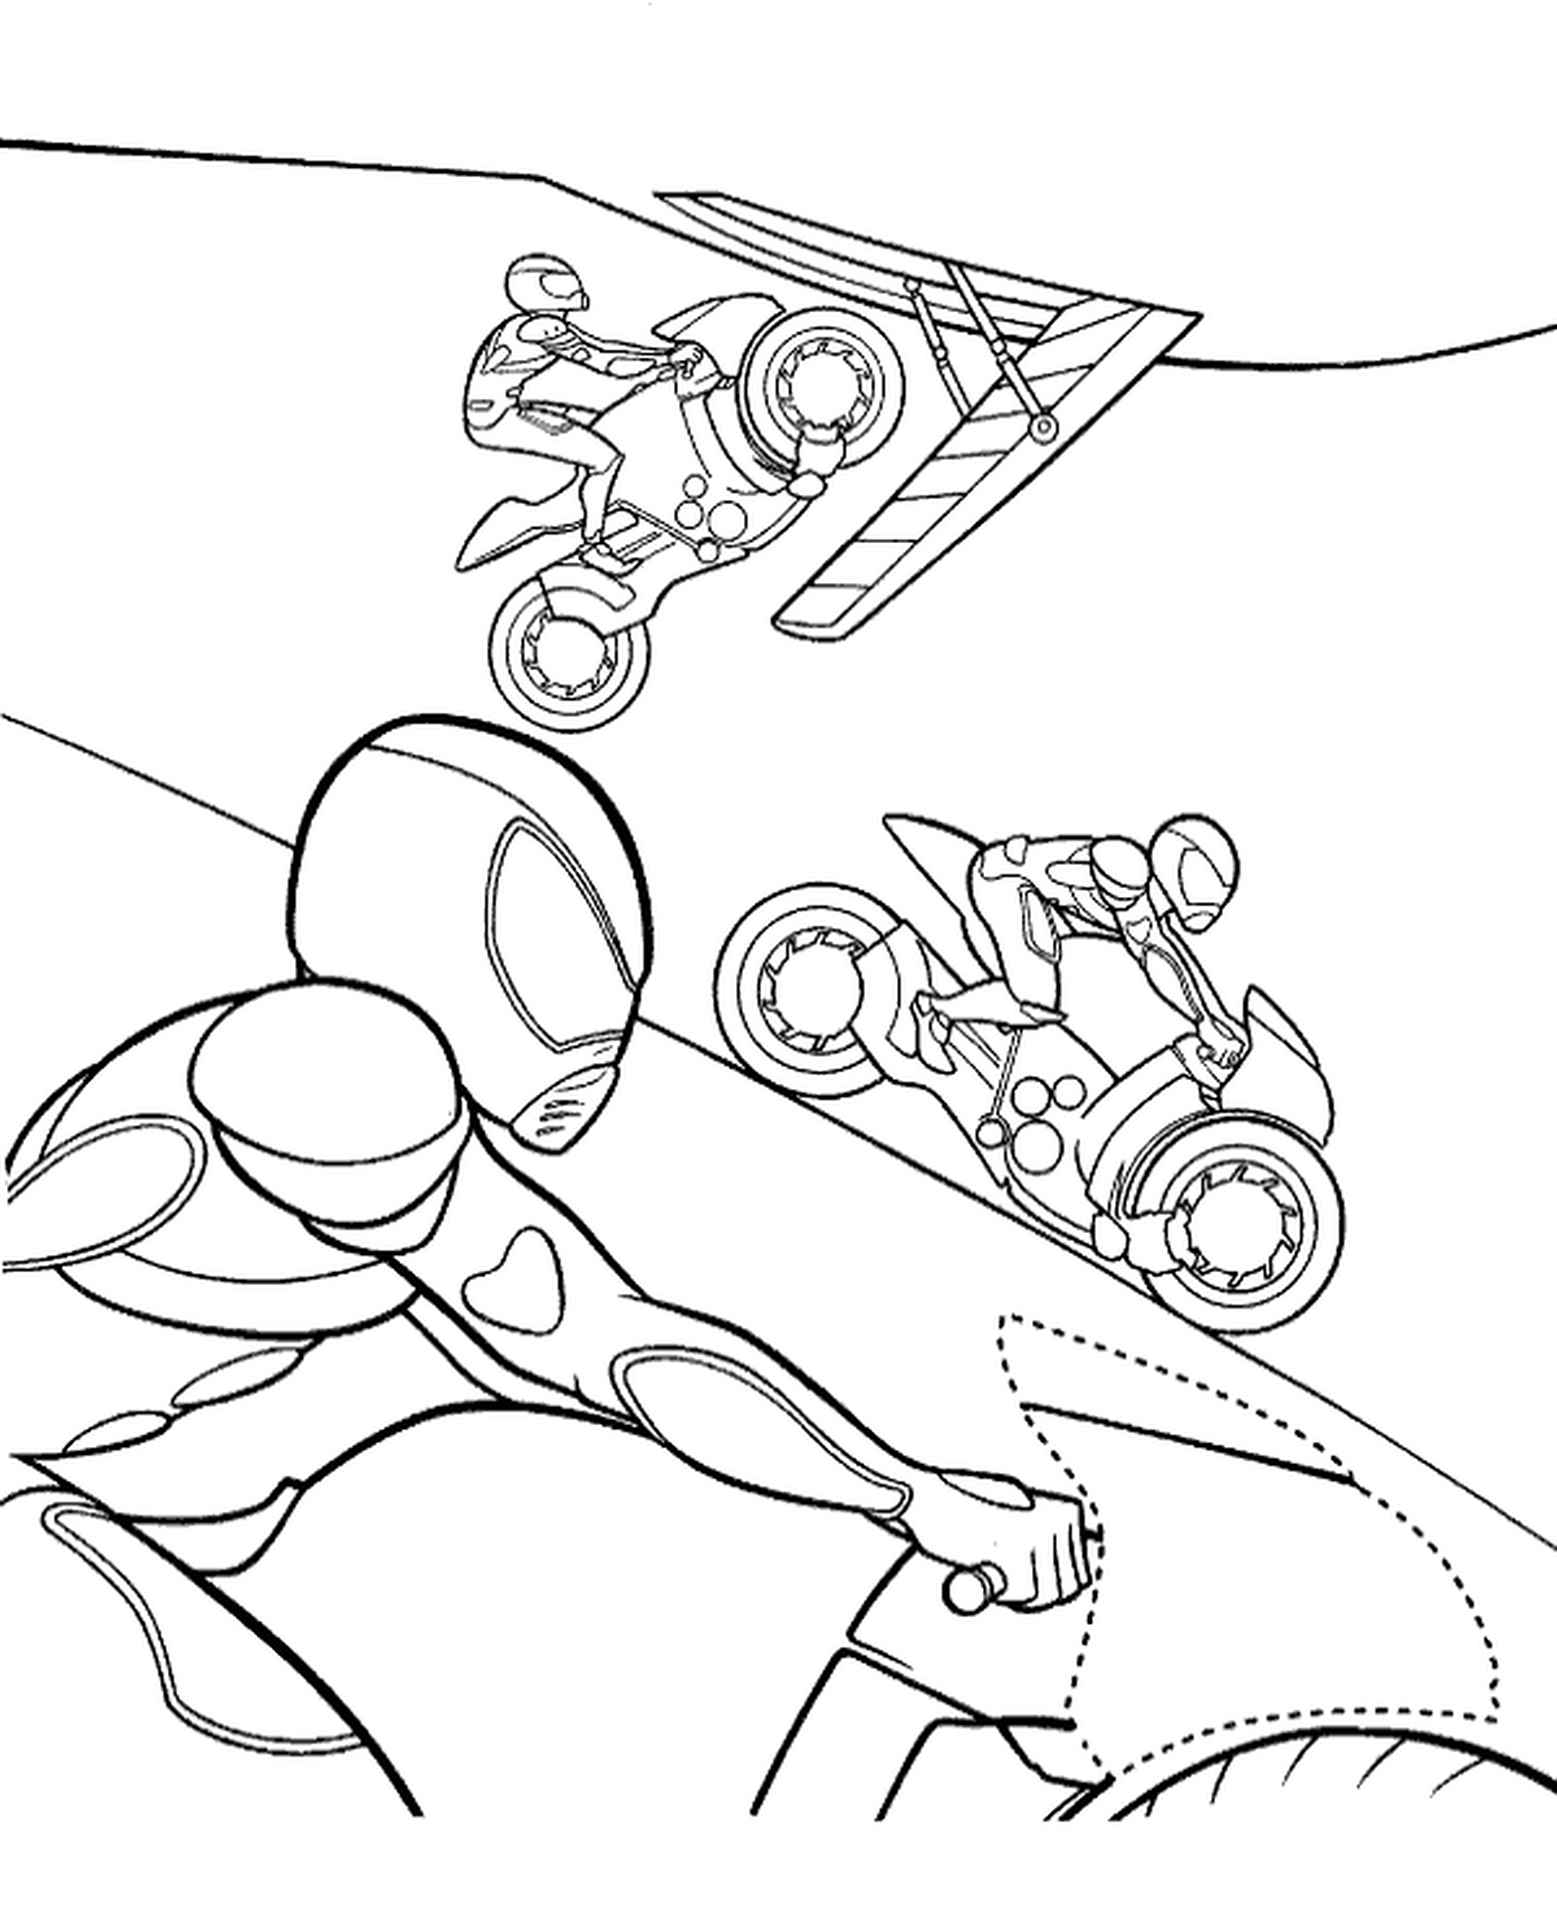 Comic Bikes Coloring Page